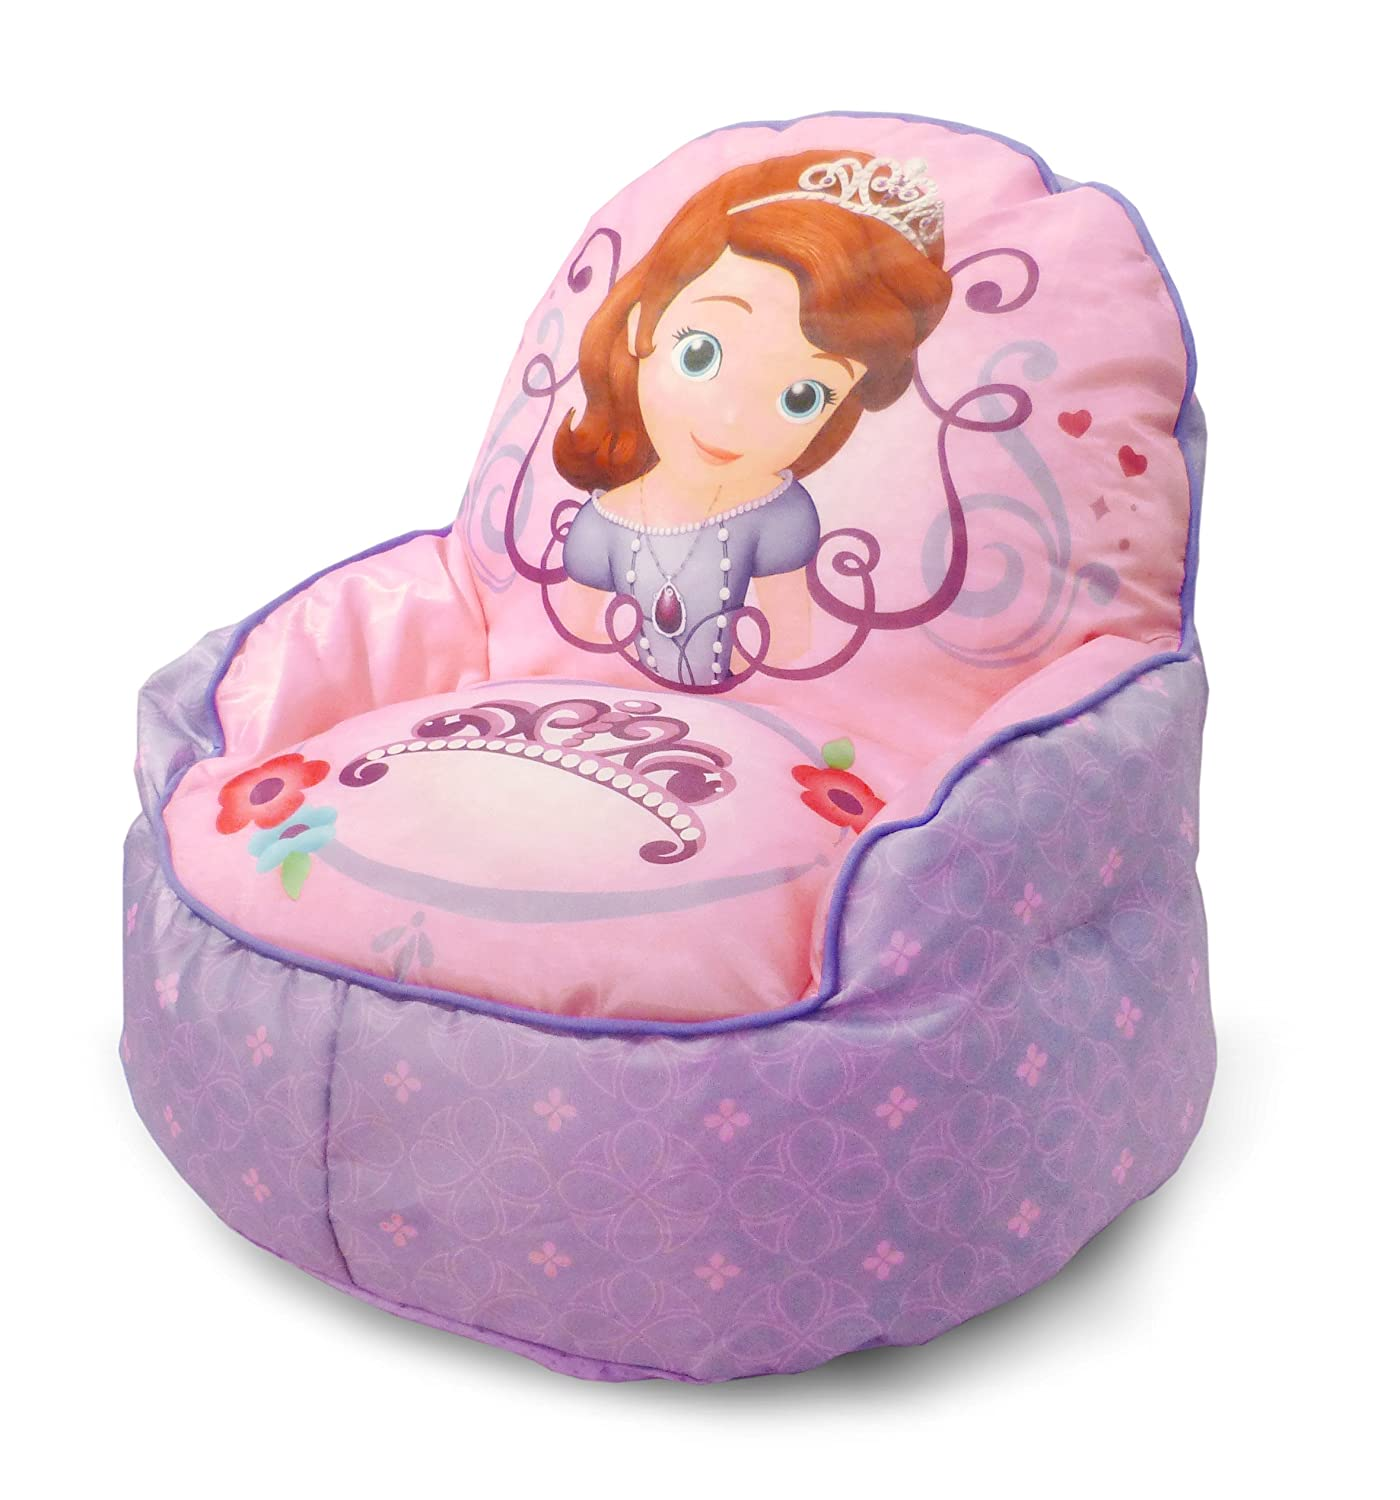 Disney Sofia The 1st Toddler Bean Bag Sofa Chair